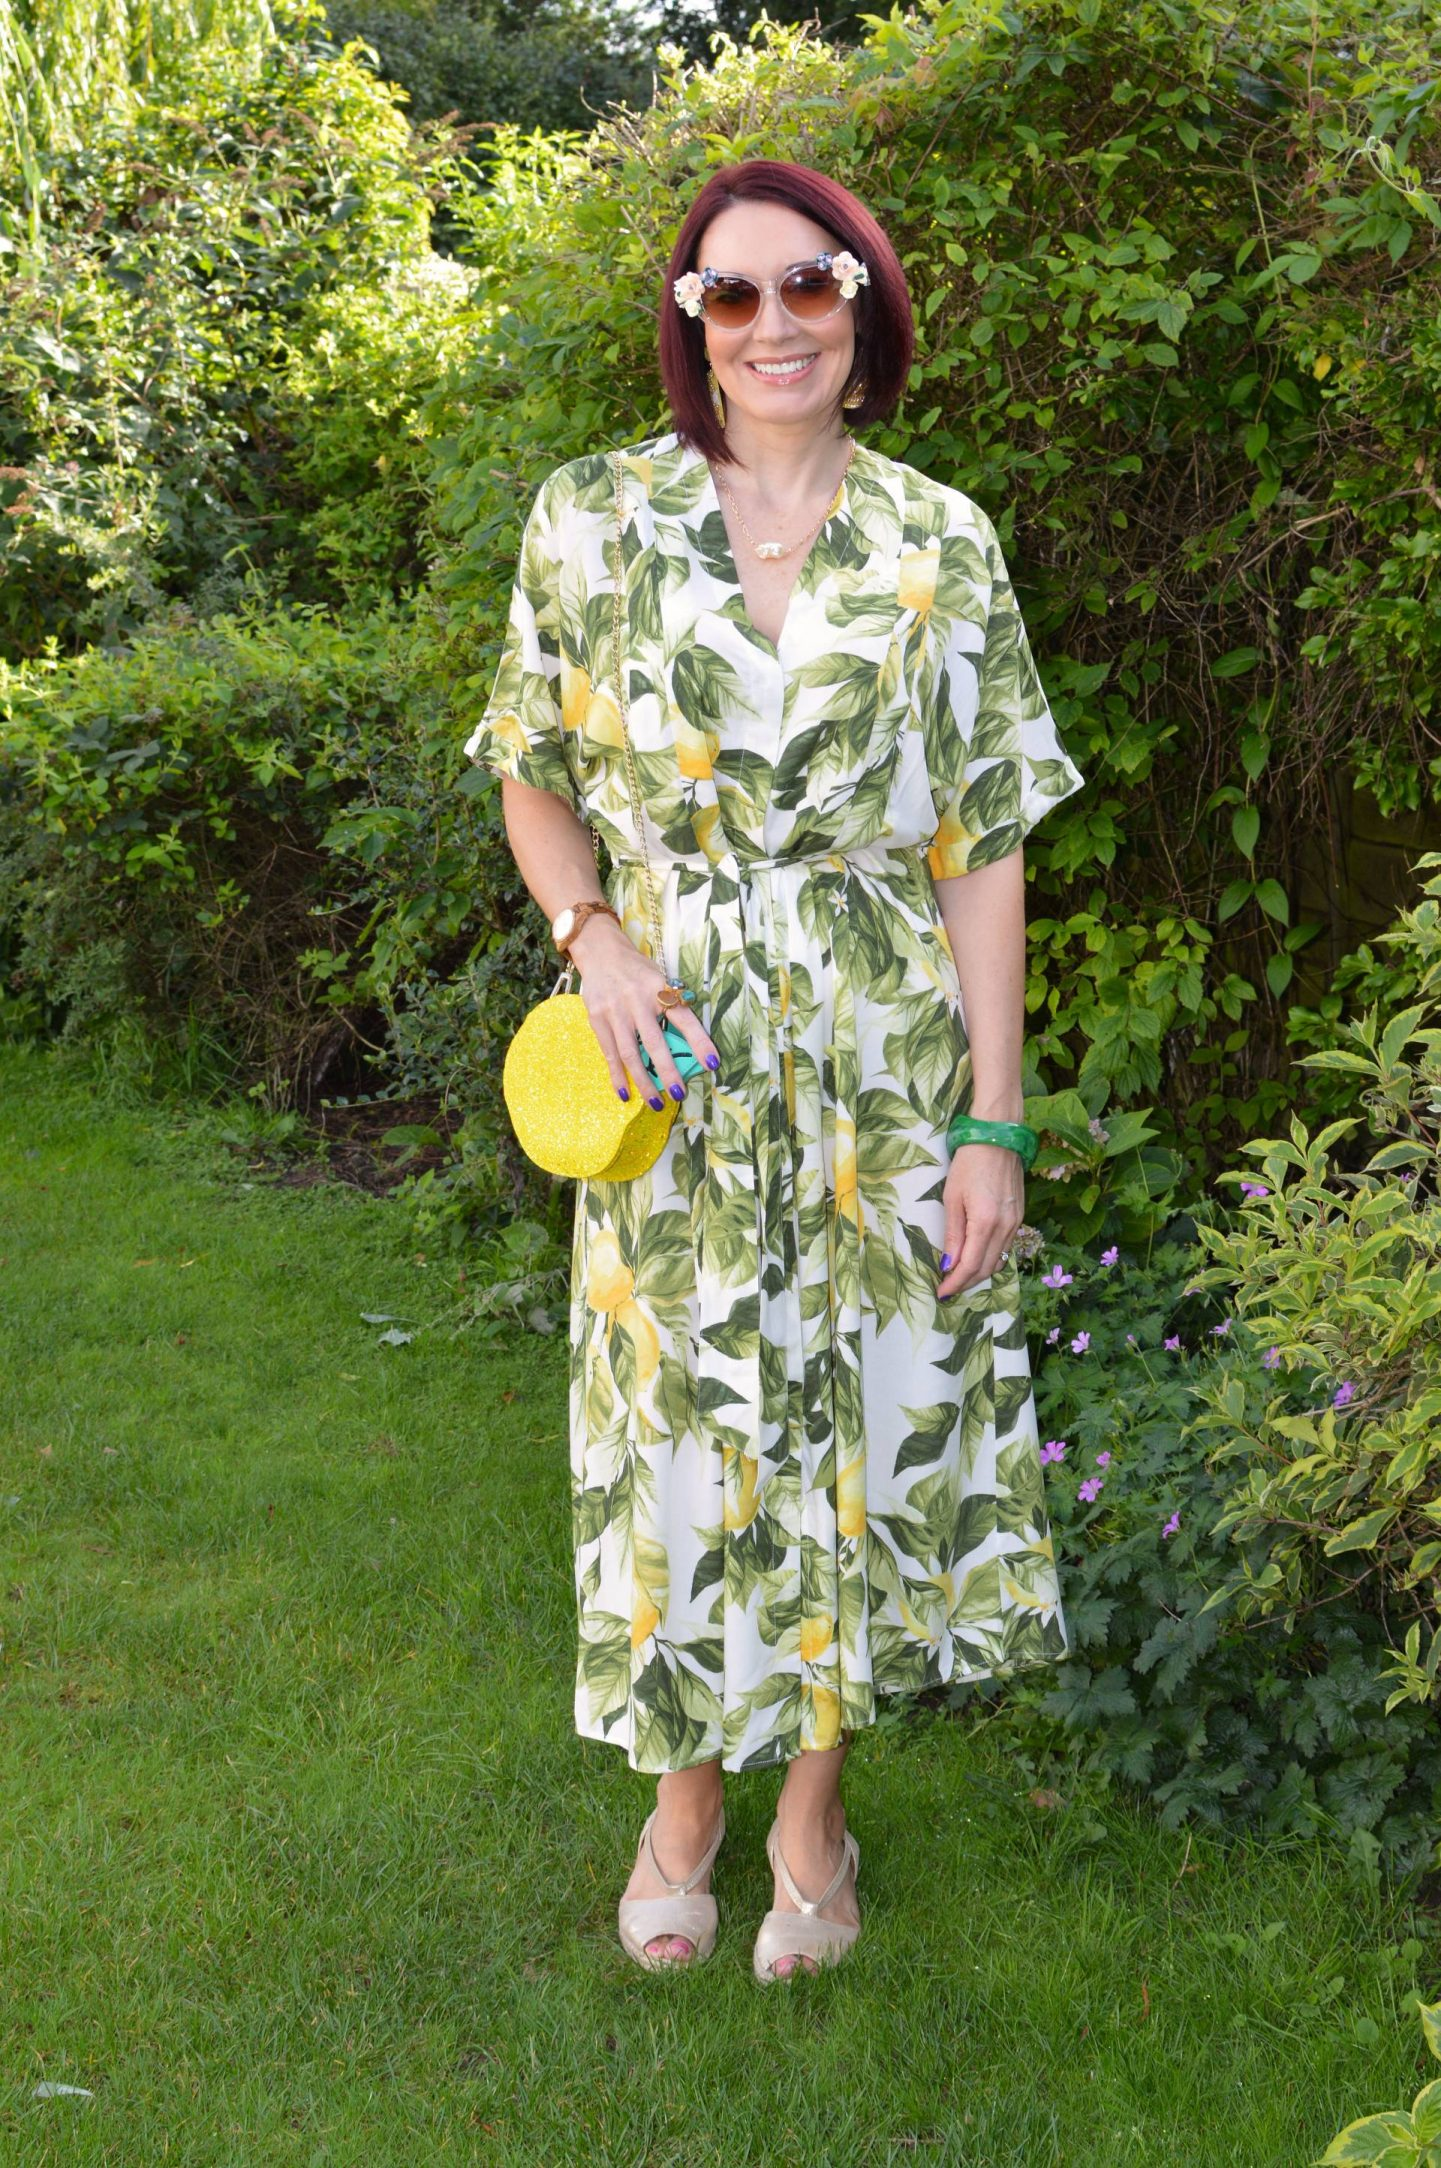 H&M Lemon Print Midi Dress, Skinny Dip lemon bag, Jeeper Peepers flower sunglasses